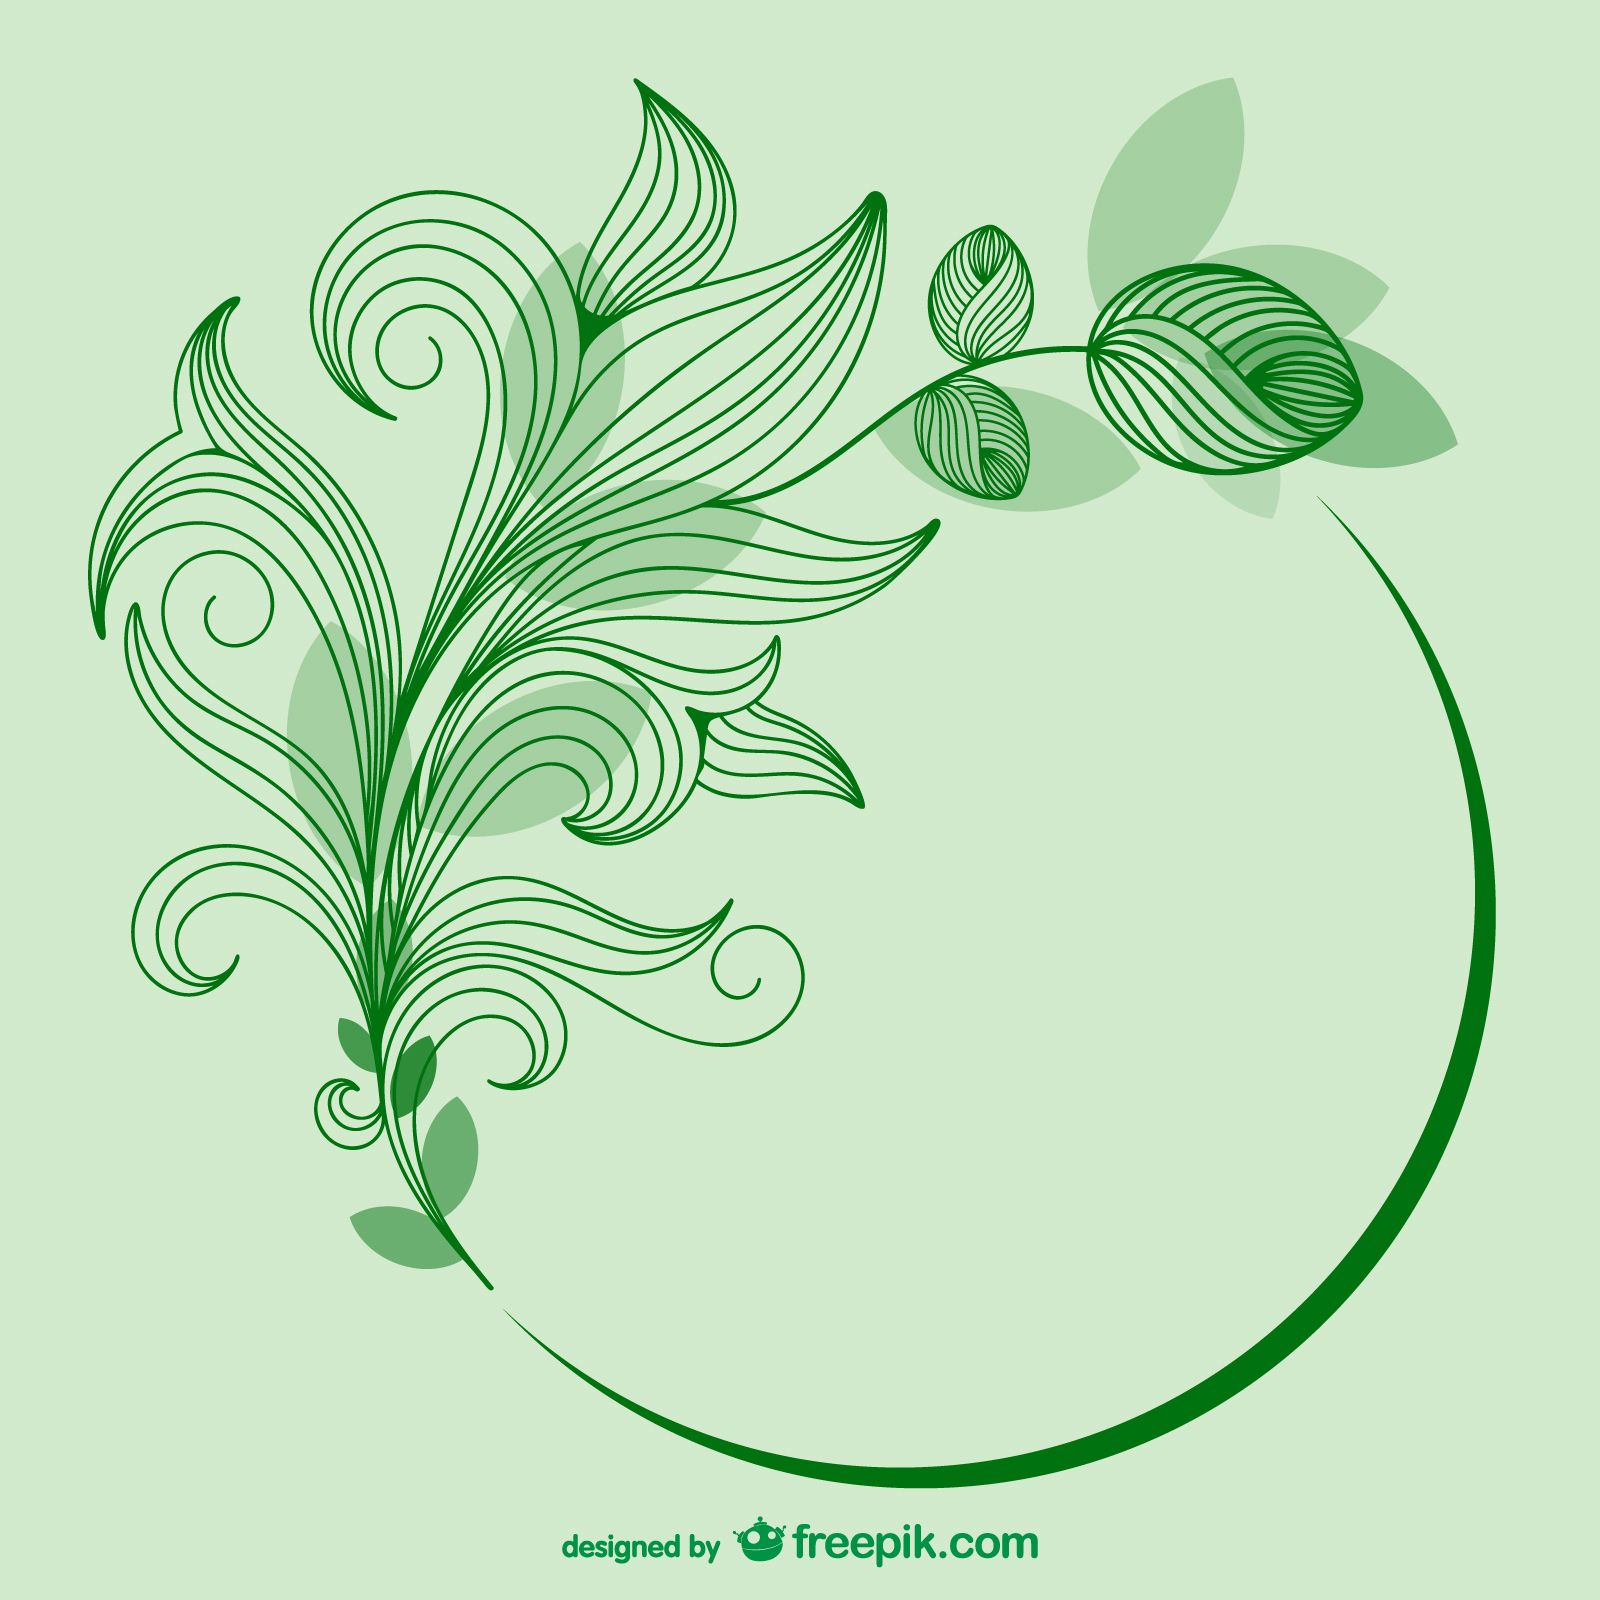 Sketched Green Leaves Free Download Vector CDR, AI, EPS and PNG Formats